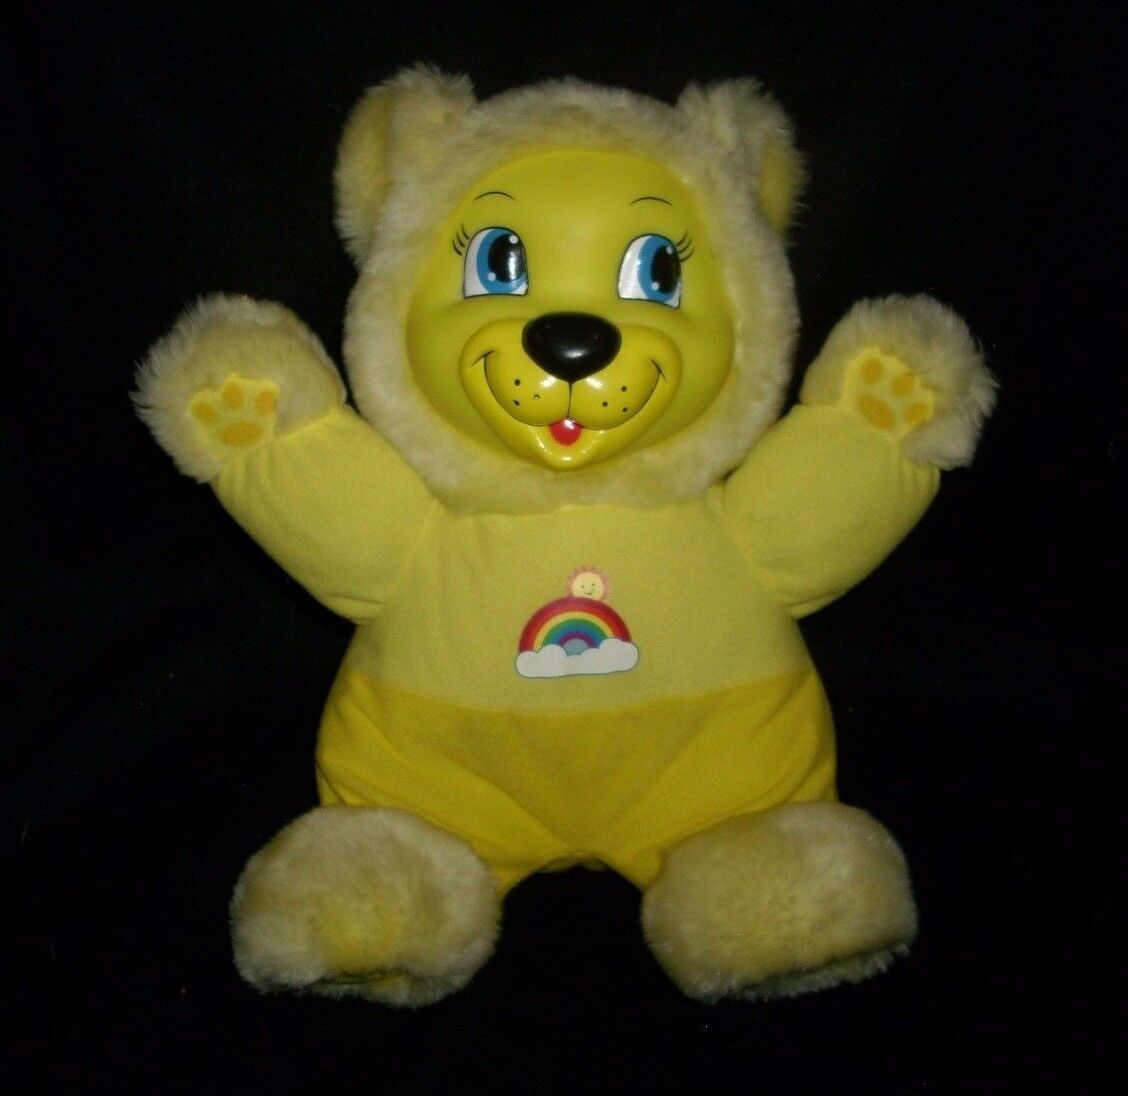 VINTAGE BABIES N THINGS YELLOW TEDDY BEAR MUSICAL LIGHT STUFFED ANIMAL PLUSH TOY